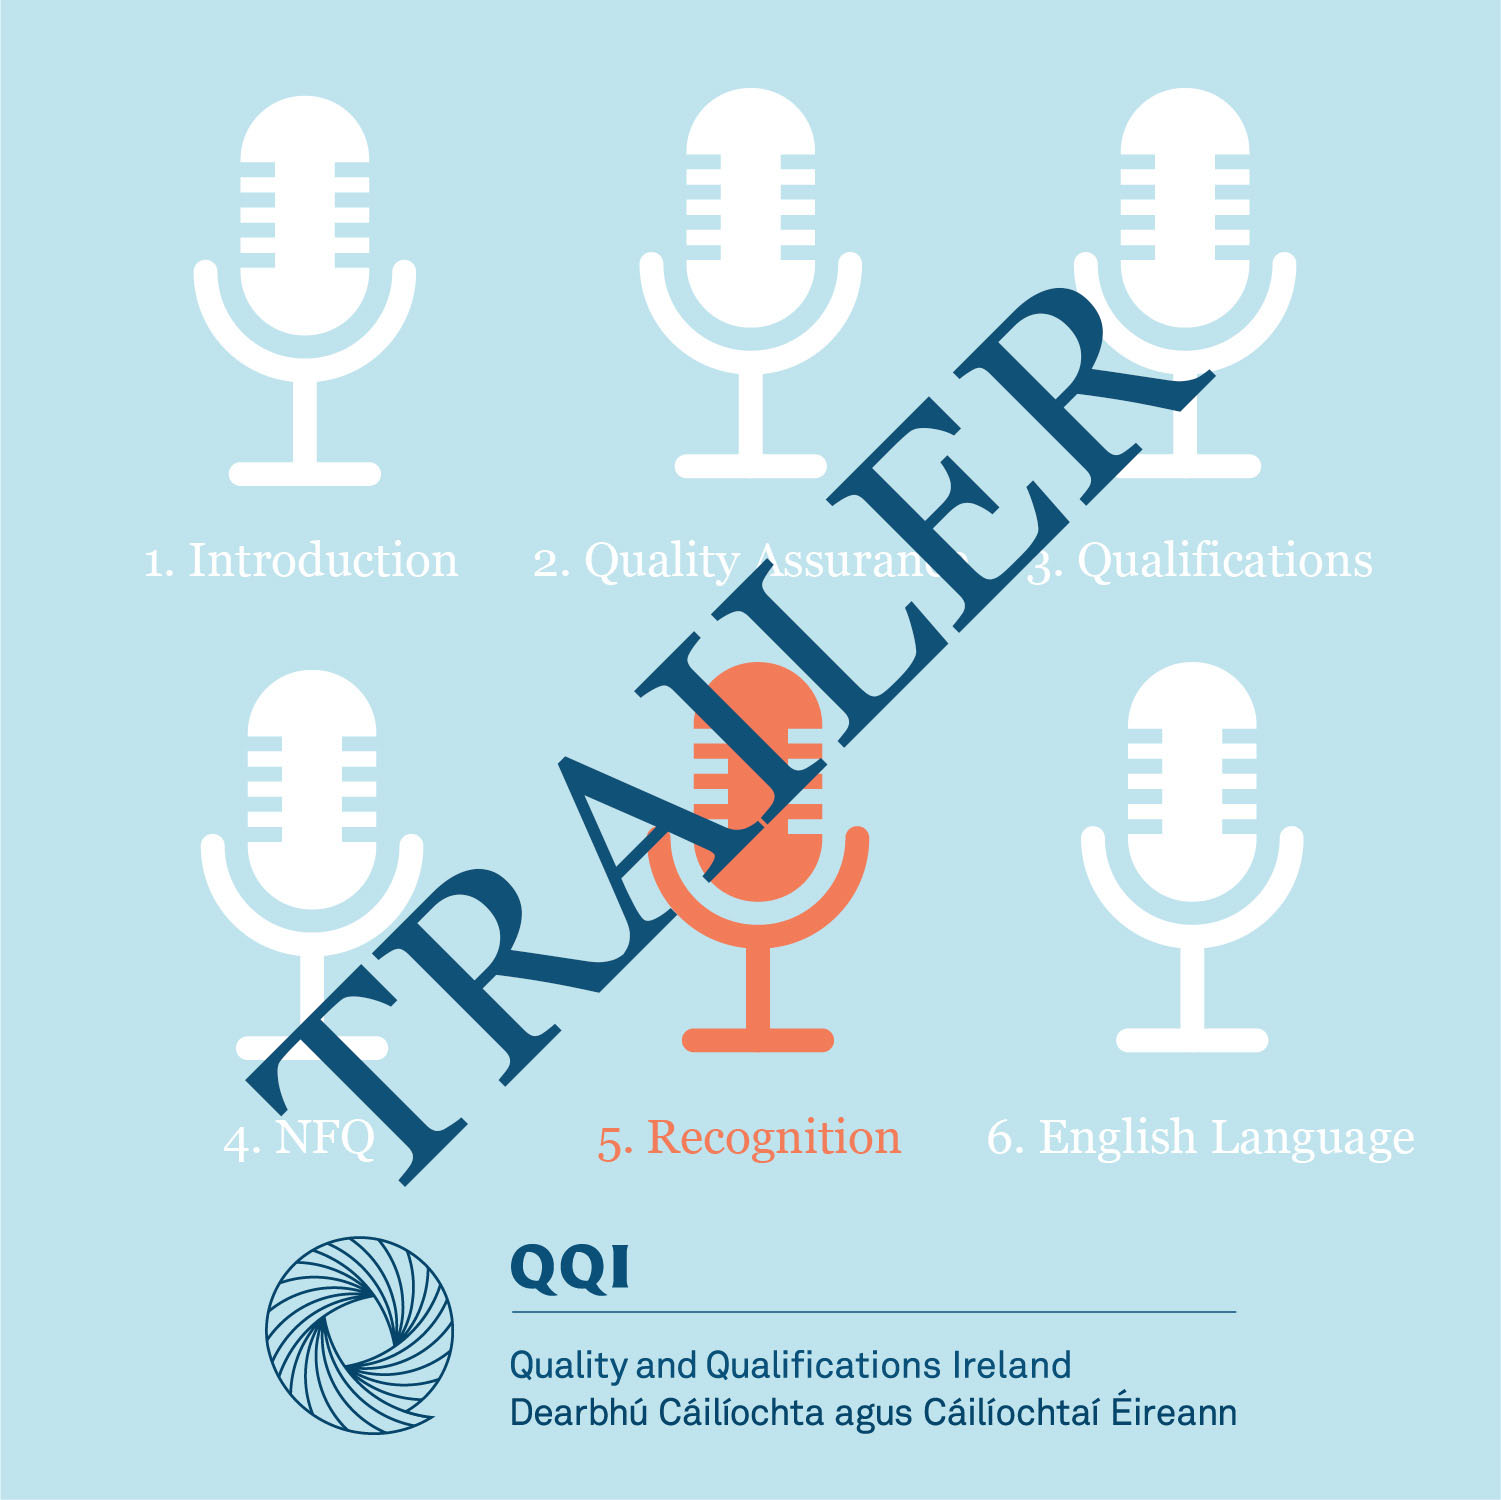 5. Recognition of Qualifications Home and Abroad—Trailer 2